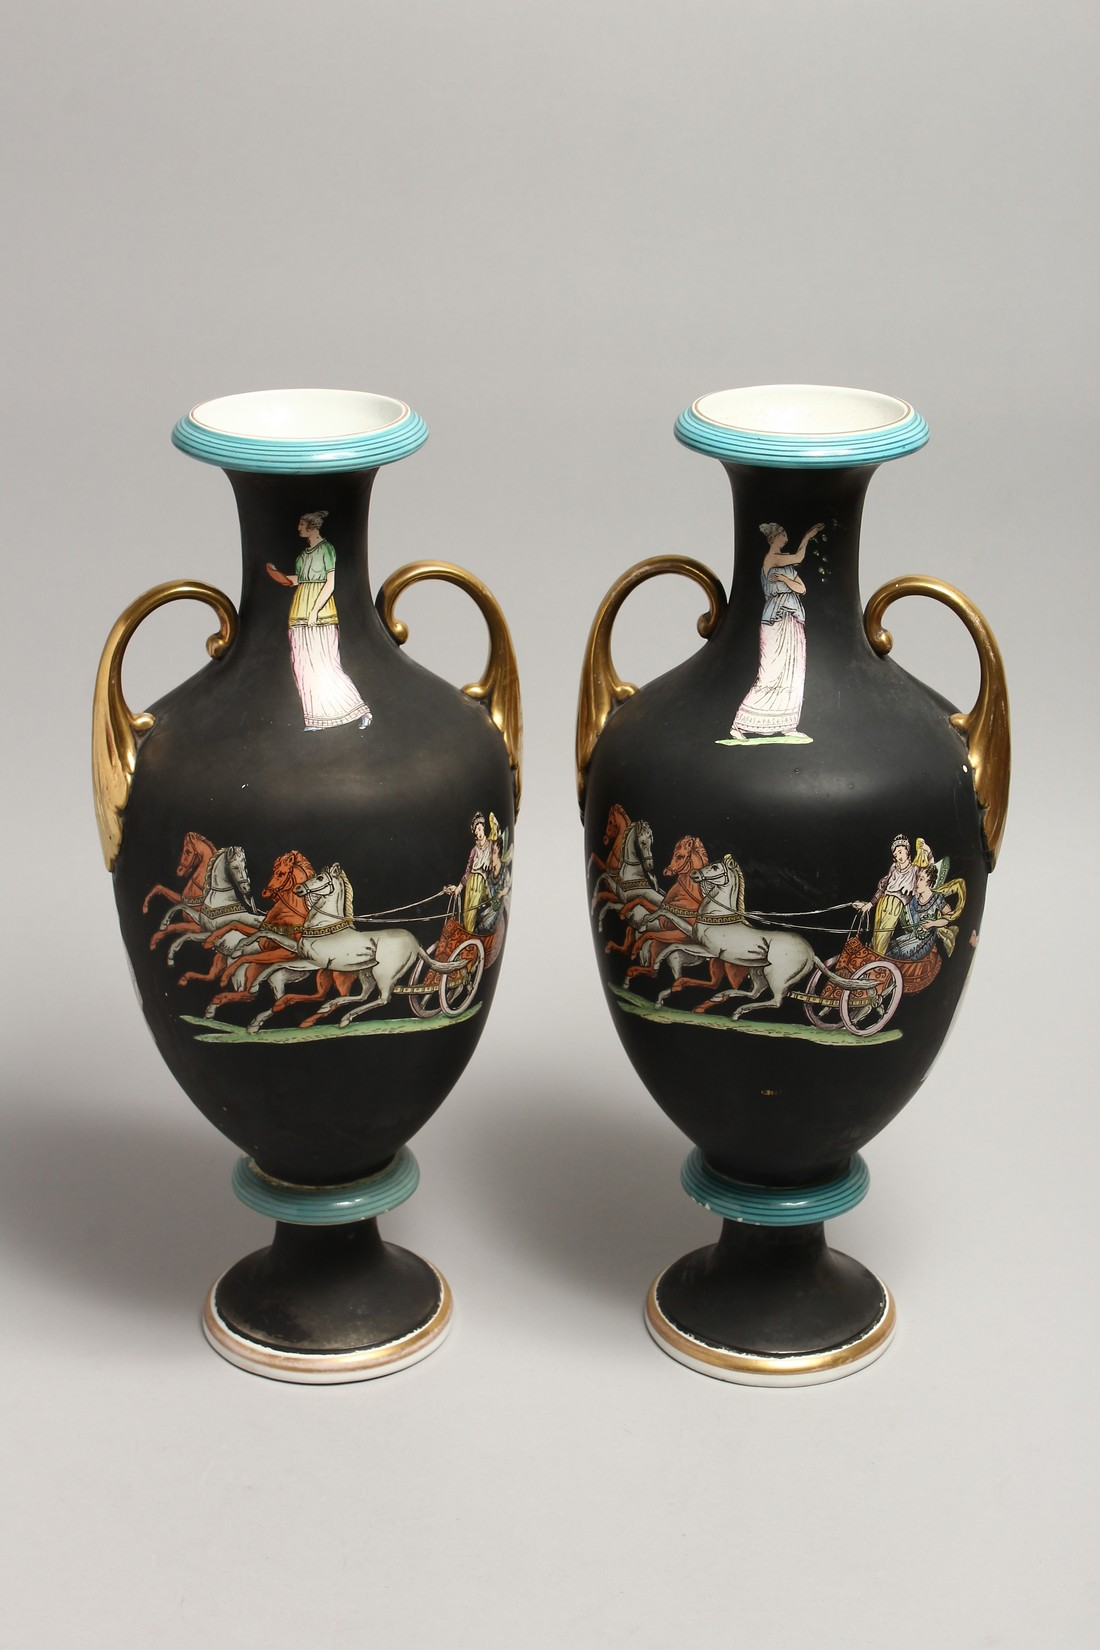 A PAIR OF CLASSICAL TWO HANDLED VASES with Greek figures 16ins high. - Image 6 of 7